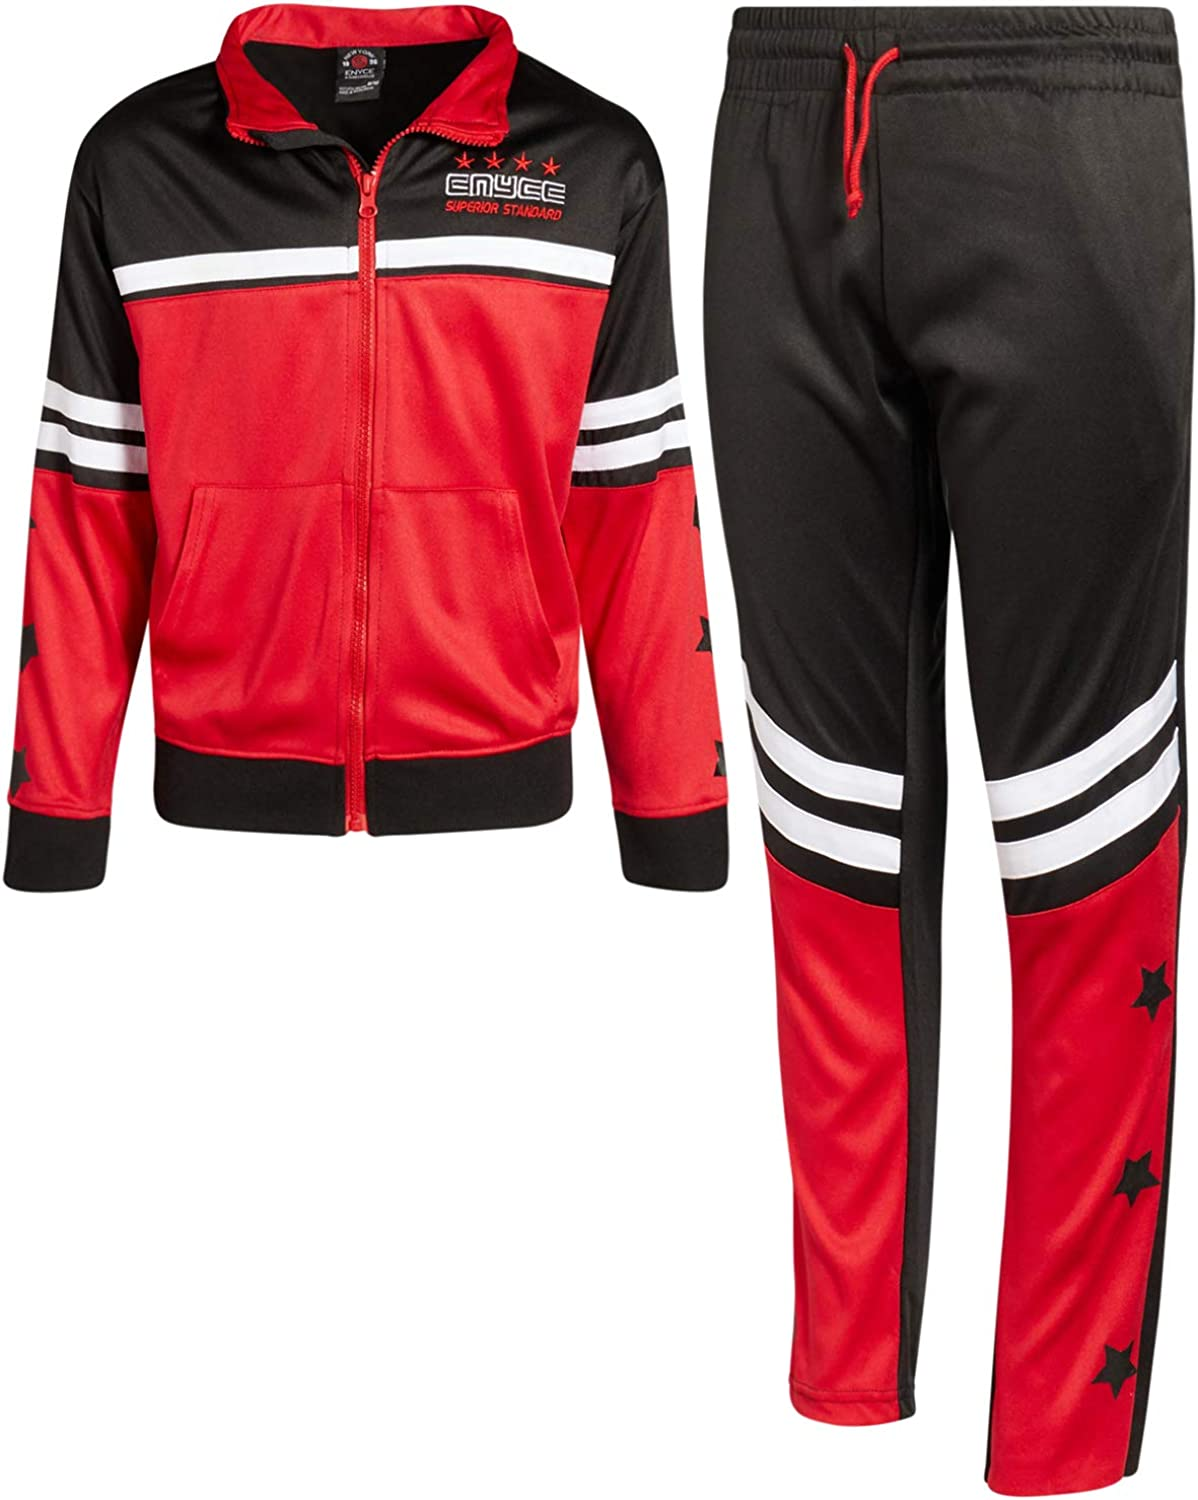 Enyce Boys 2-Piece Performance Tracksuit Set with Zip-Up Jacket and Jog Pants: Clothing